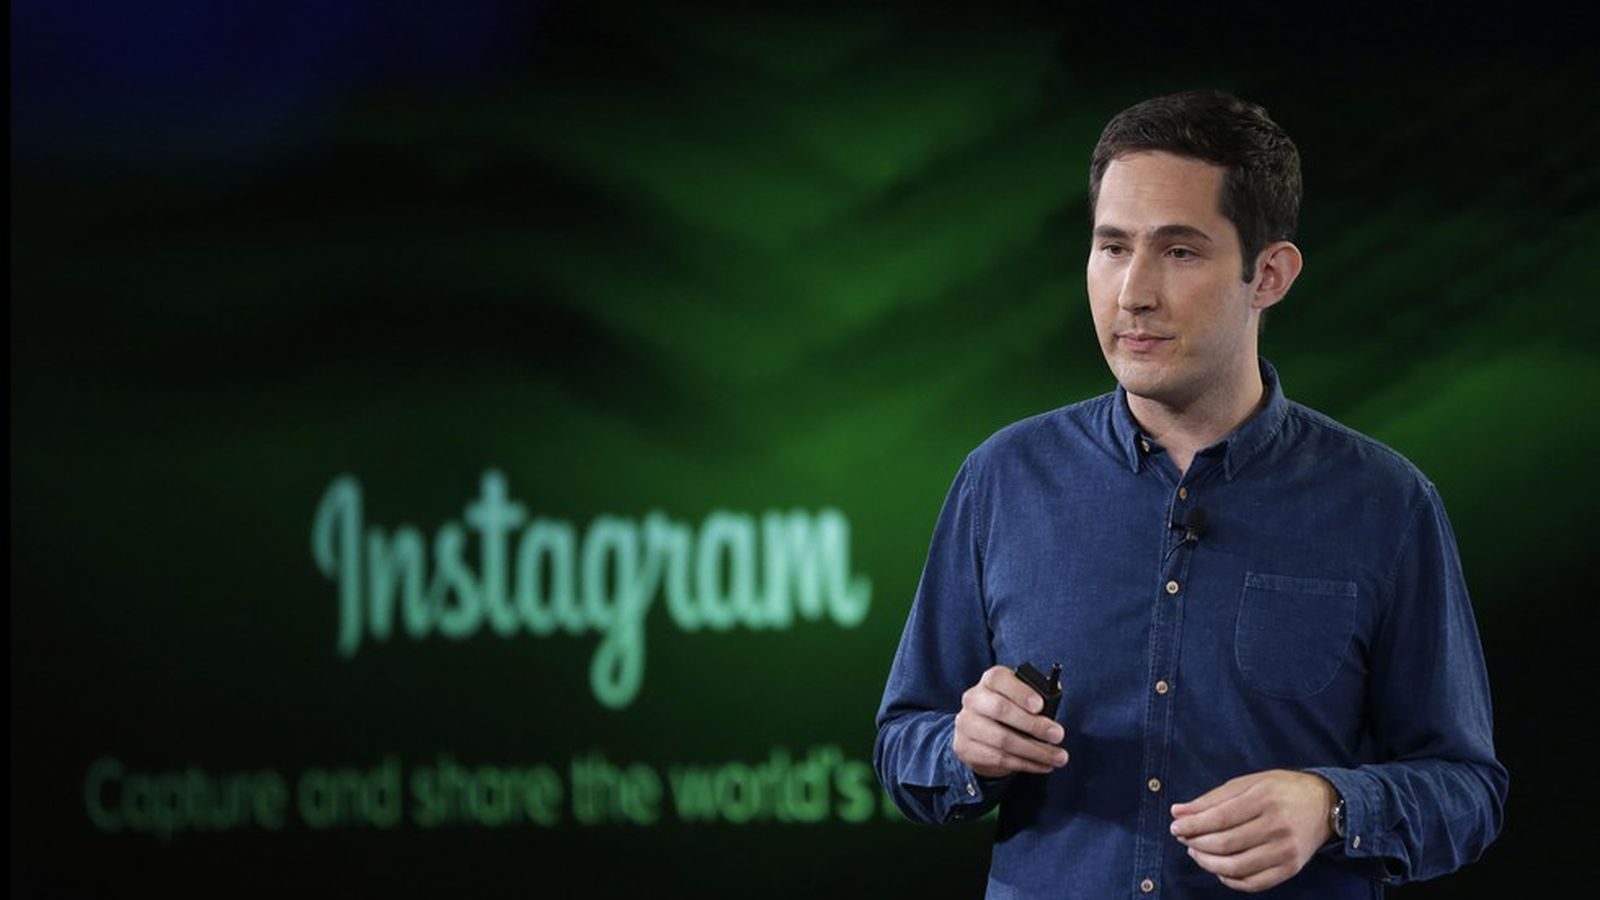 Instagram co-founder shares one thing he does every day - Axios